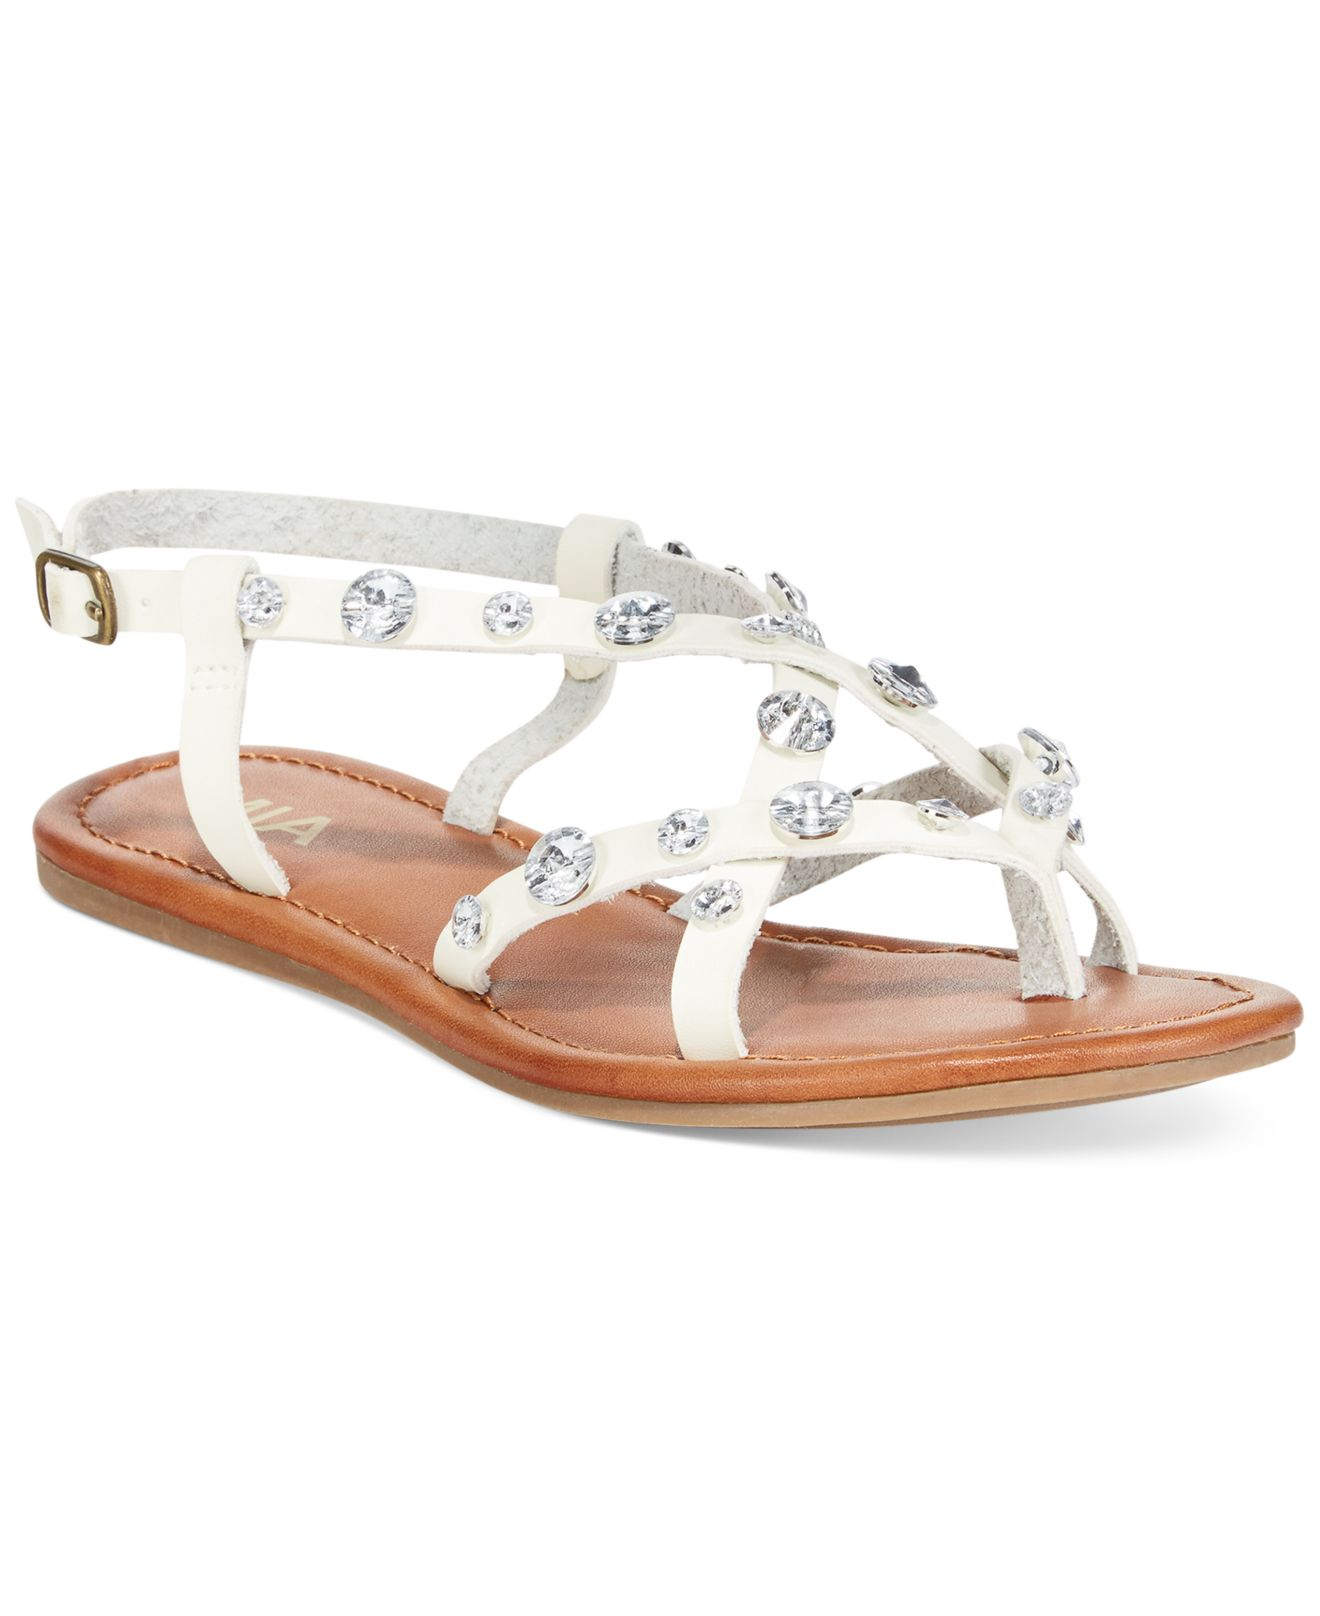 Find great deals on eBay for white rhinestone flats shoes. Shop with confidence.